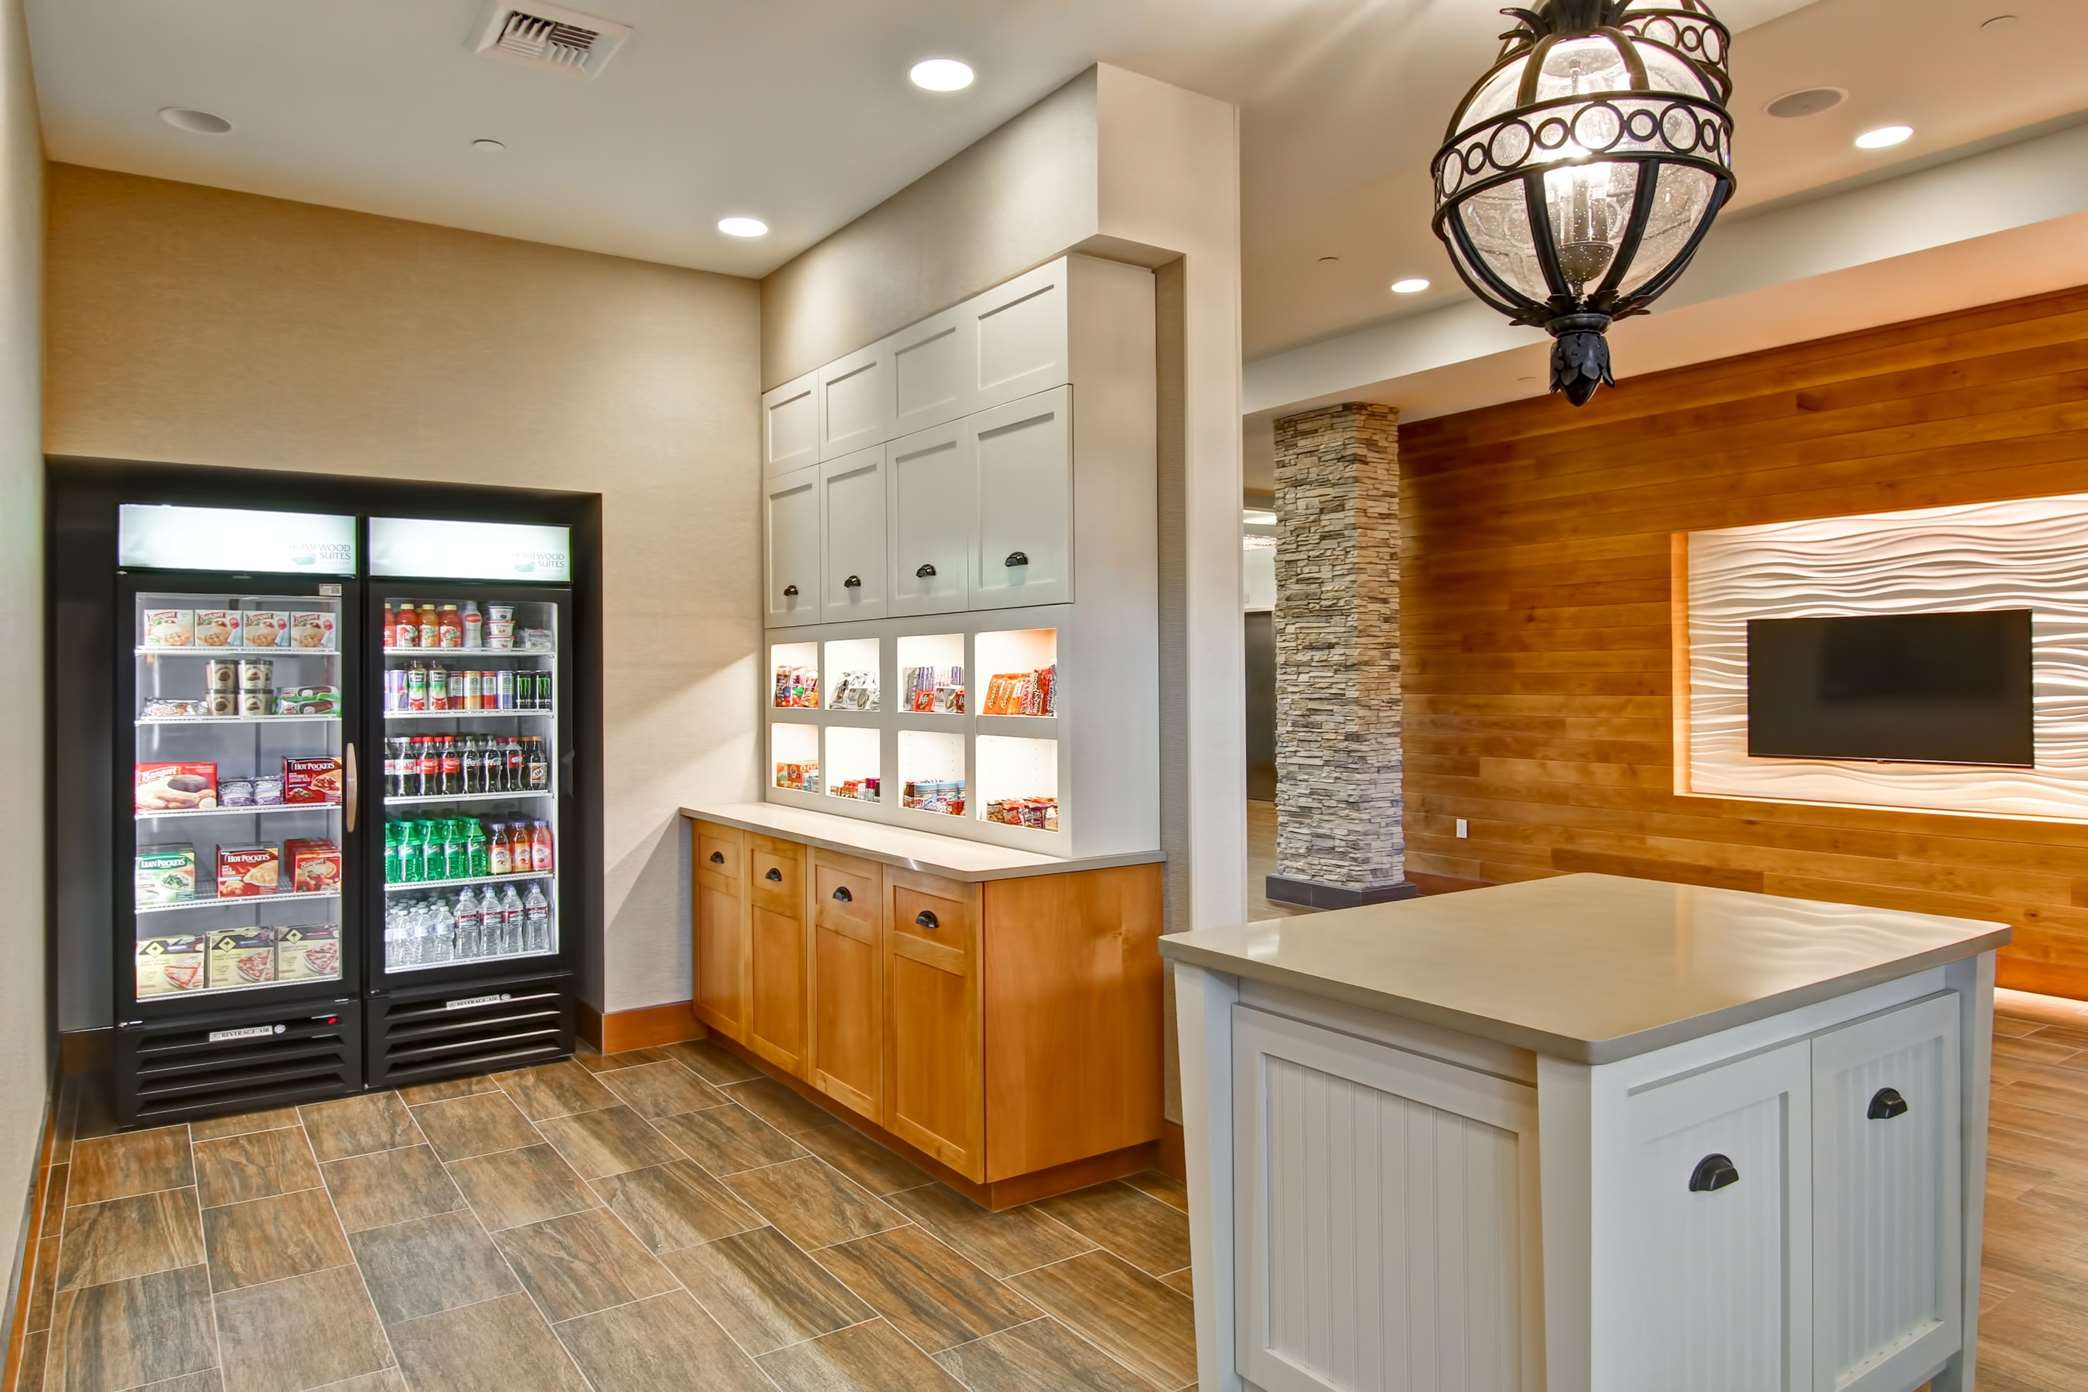 Homewood Suites by Hilton Seattle-Issaquah image 13